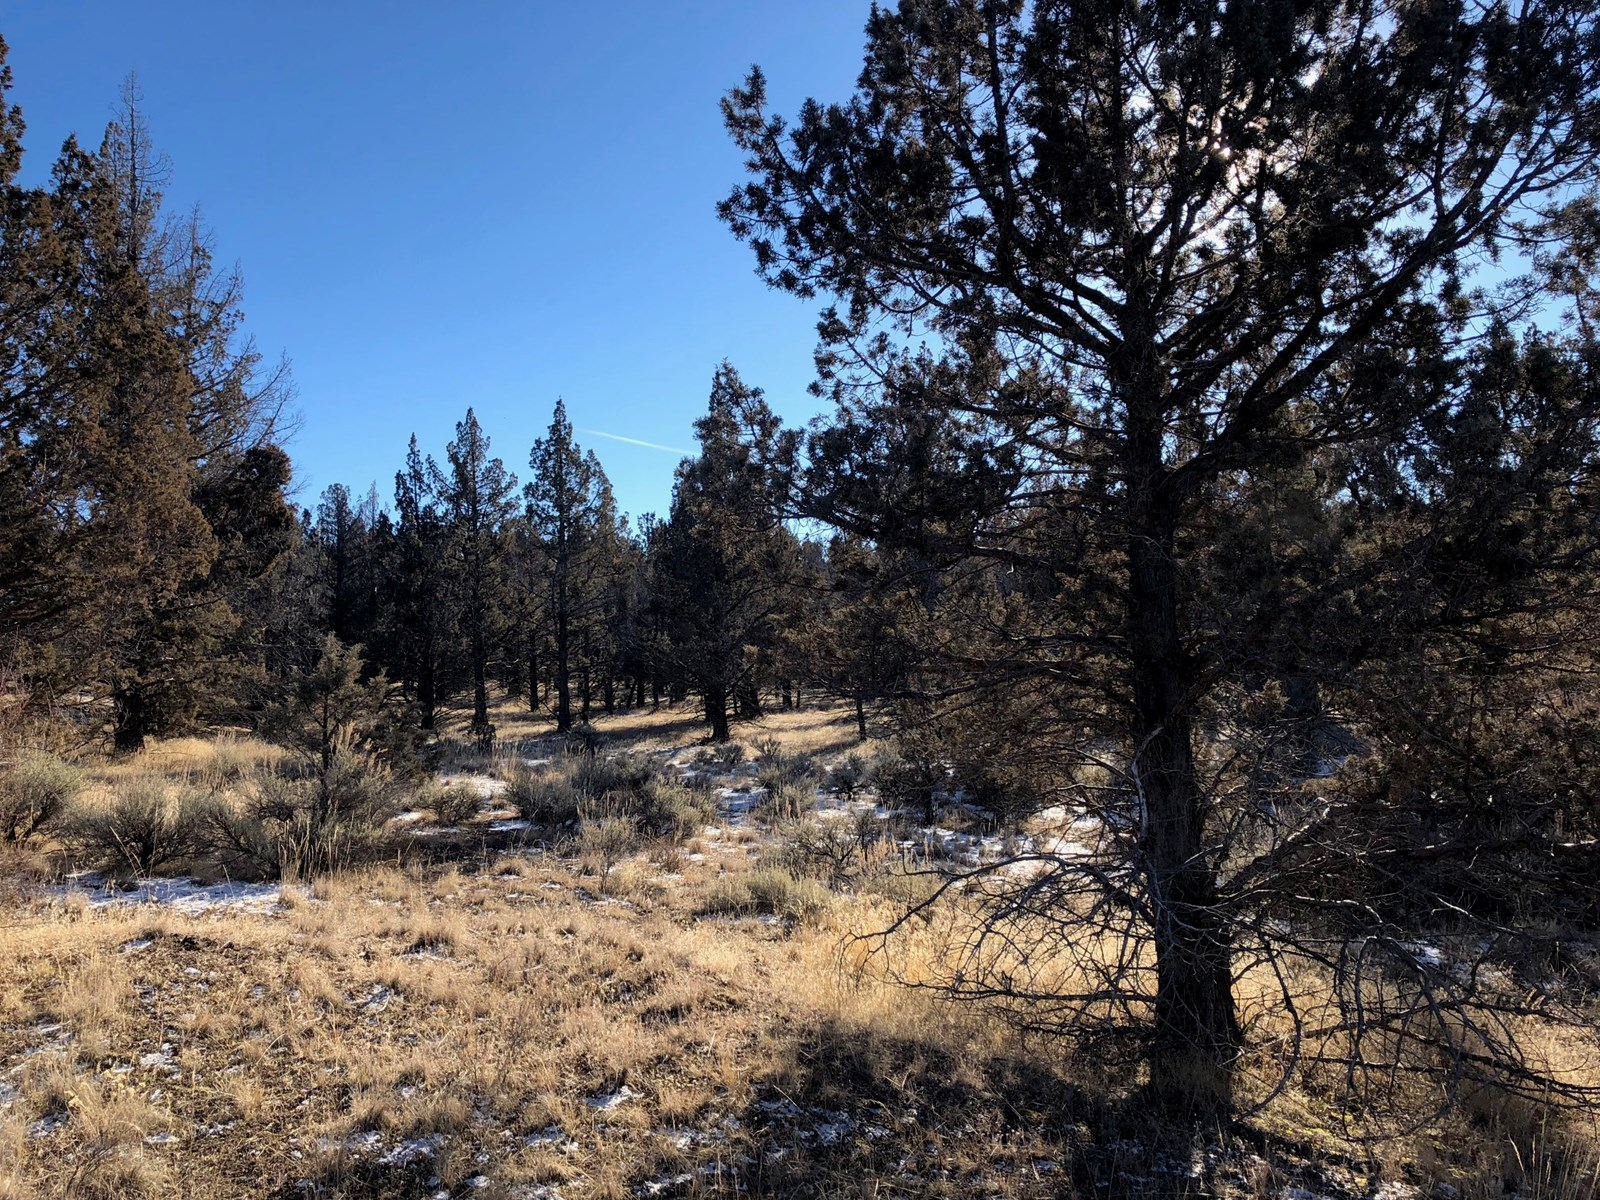 1.47 acres build-able lot in Modoc County, Northern CA